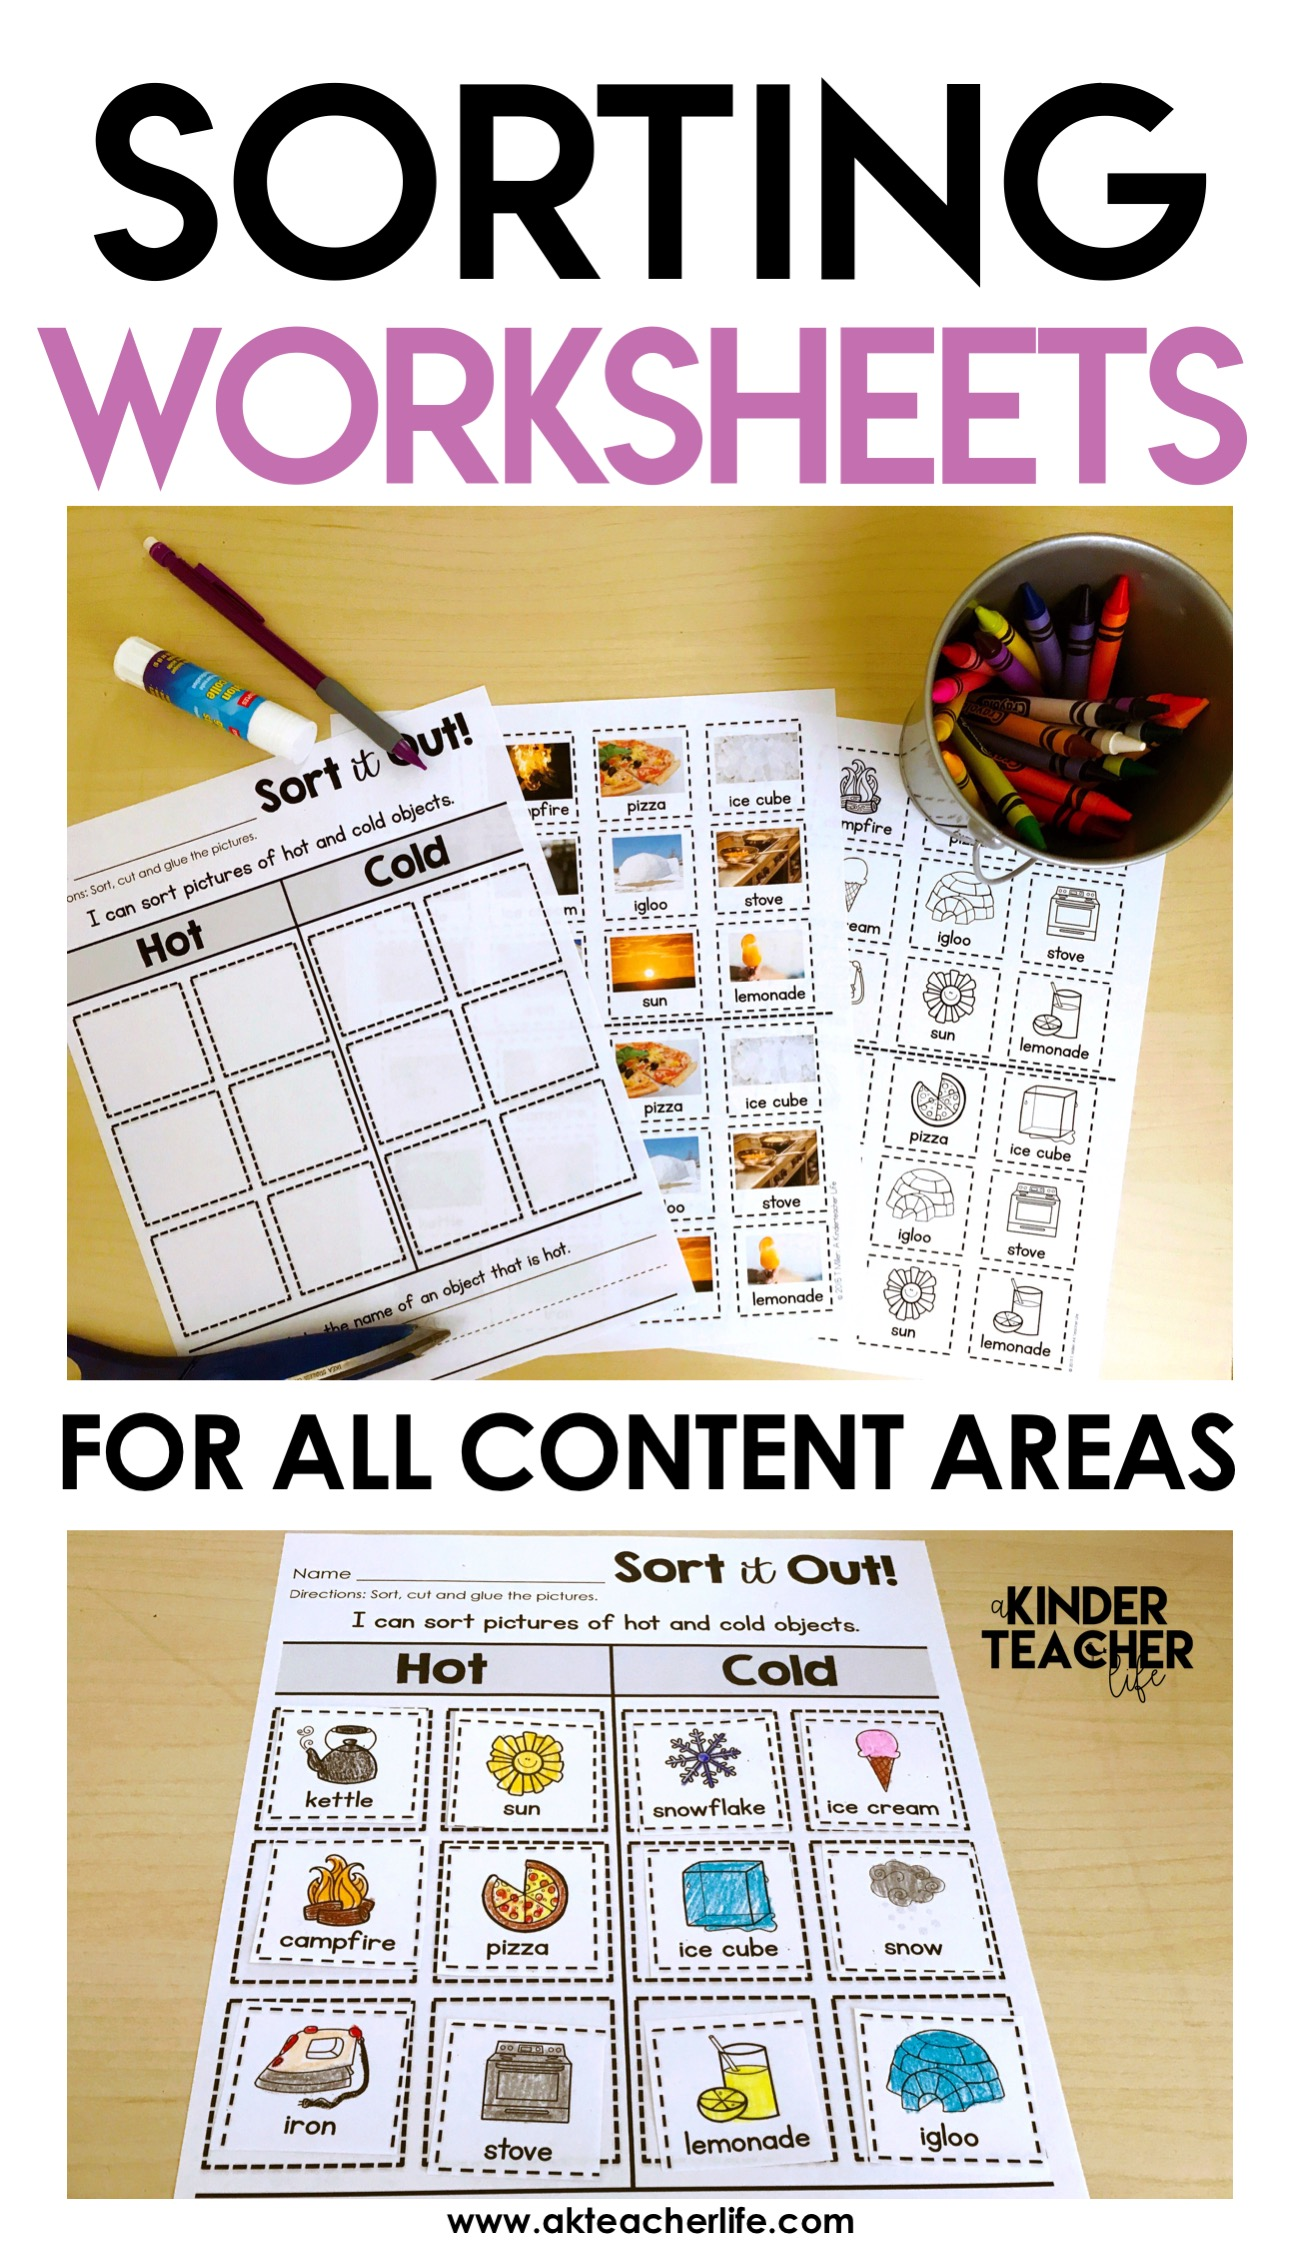 Worksheets Sorting Worksheets sorting worksheets for all content areas freebie included a kinderteacher life